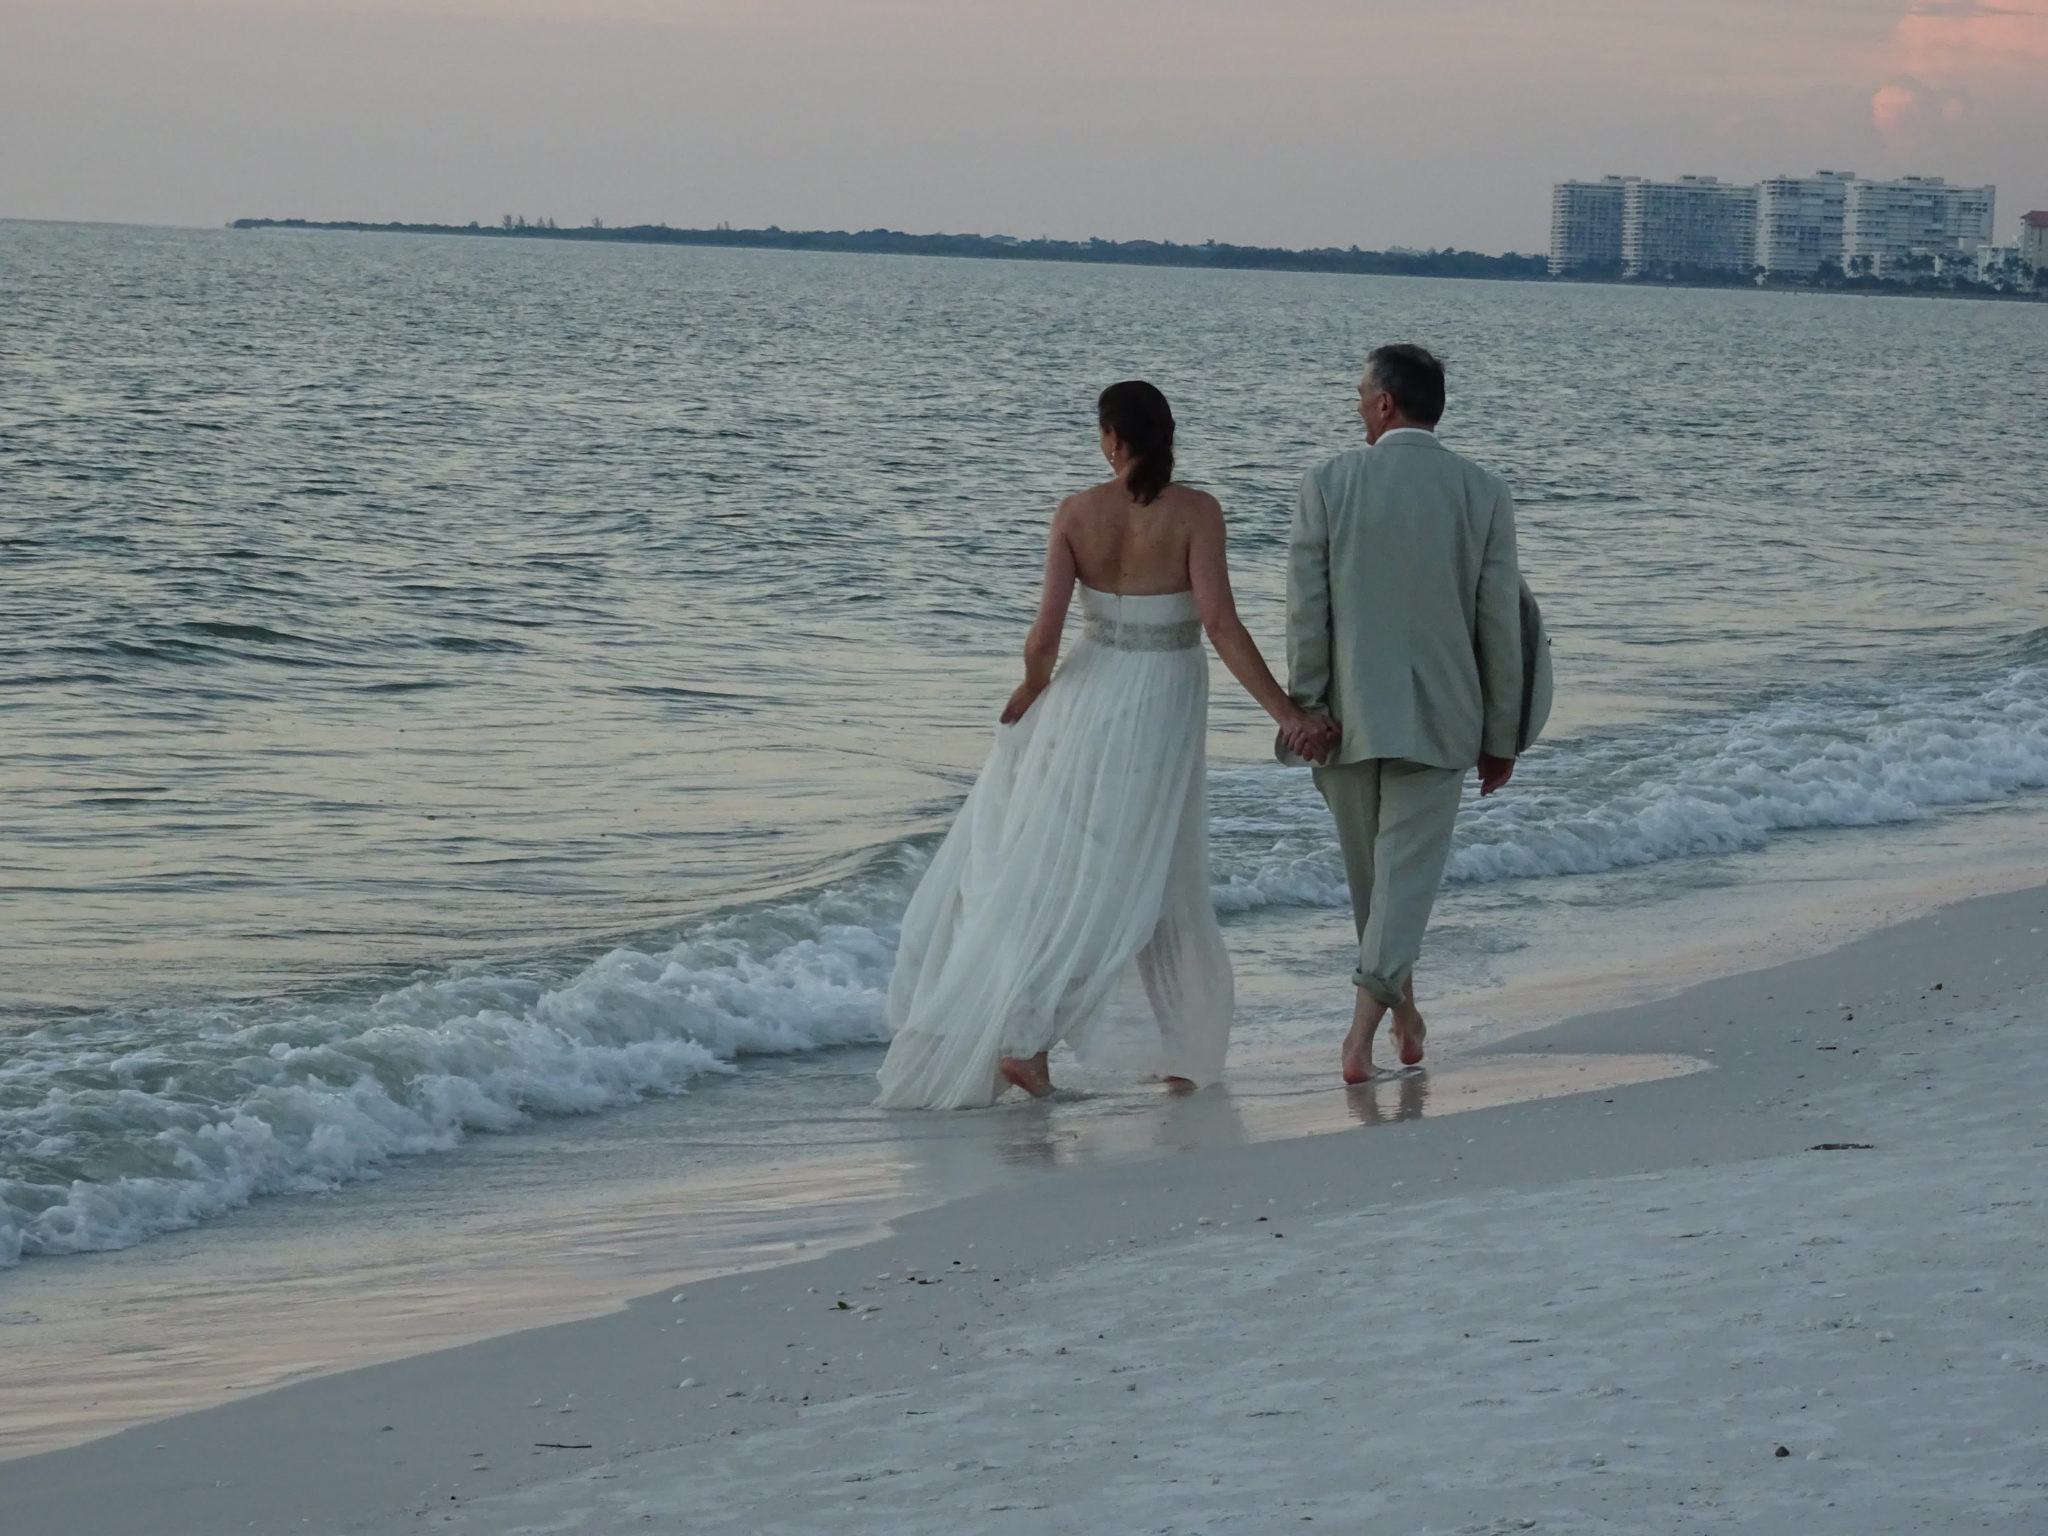 Marco Island is a great place for weddings on the beach. This is us back in October 2015